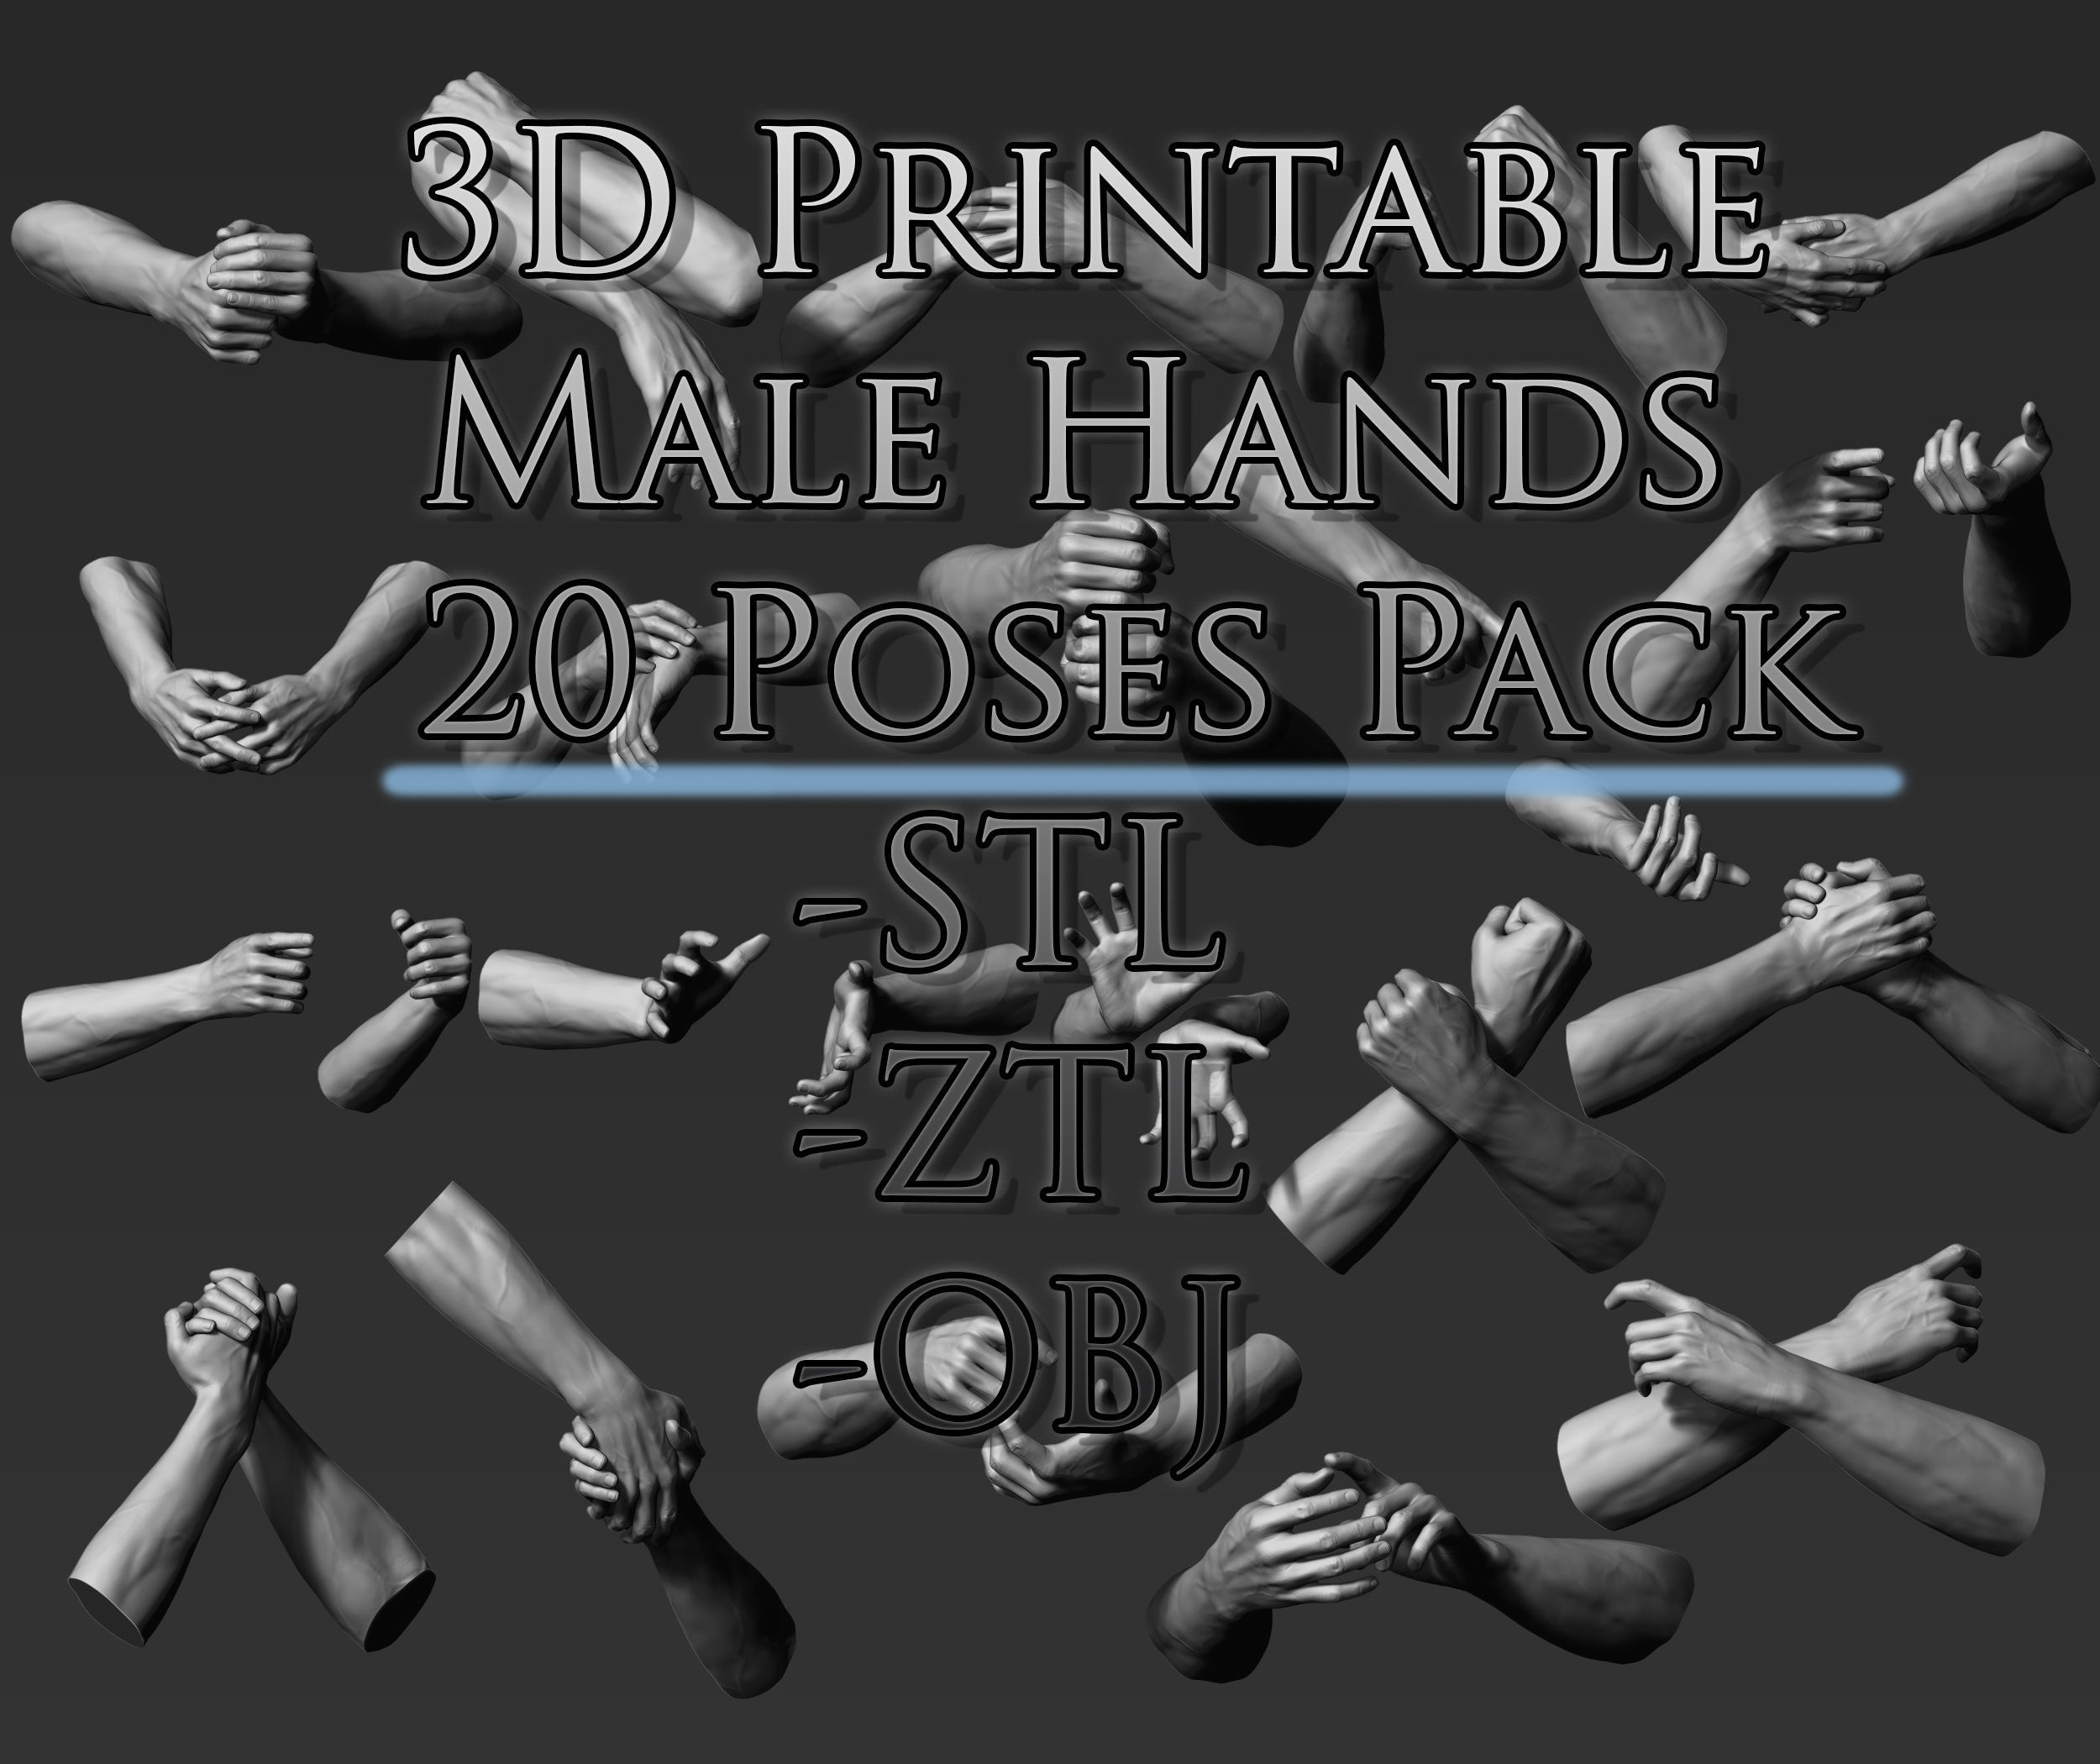 3D Printable Male Hands 20 Poses Pack